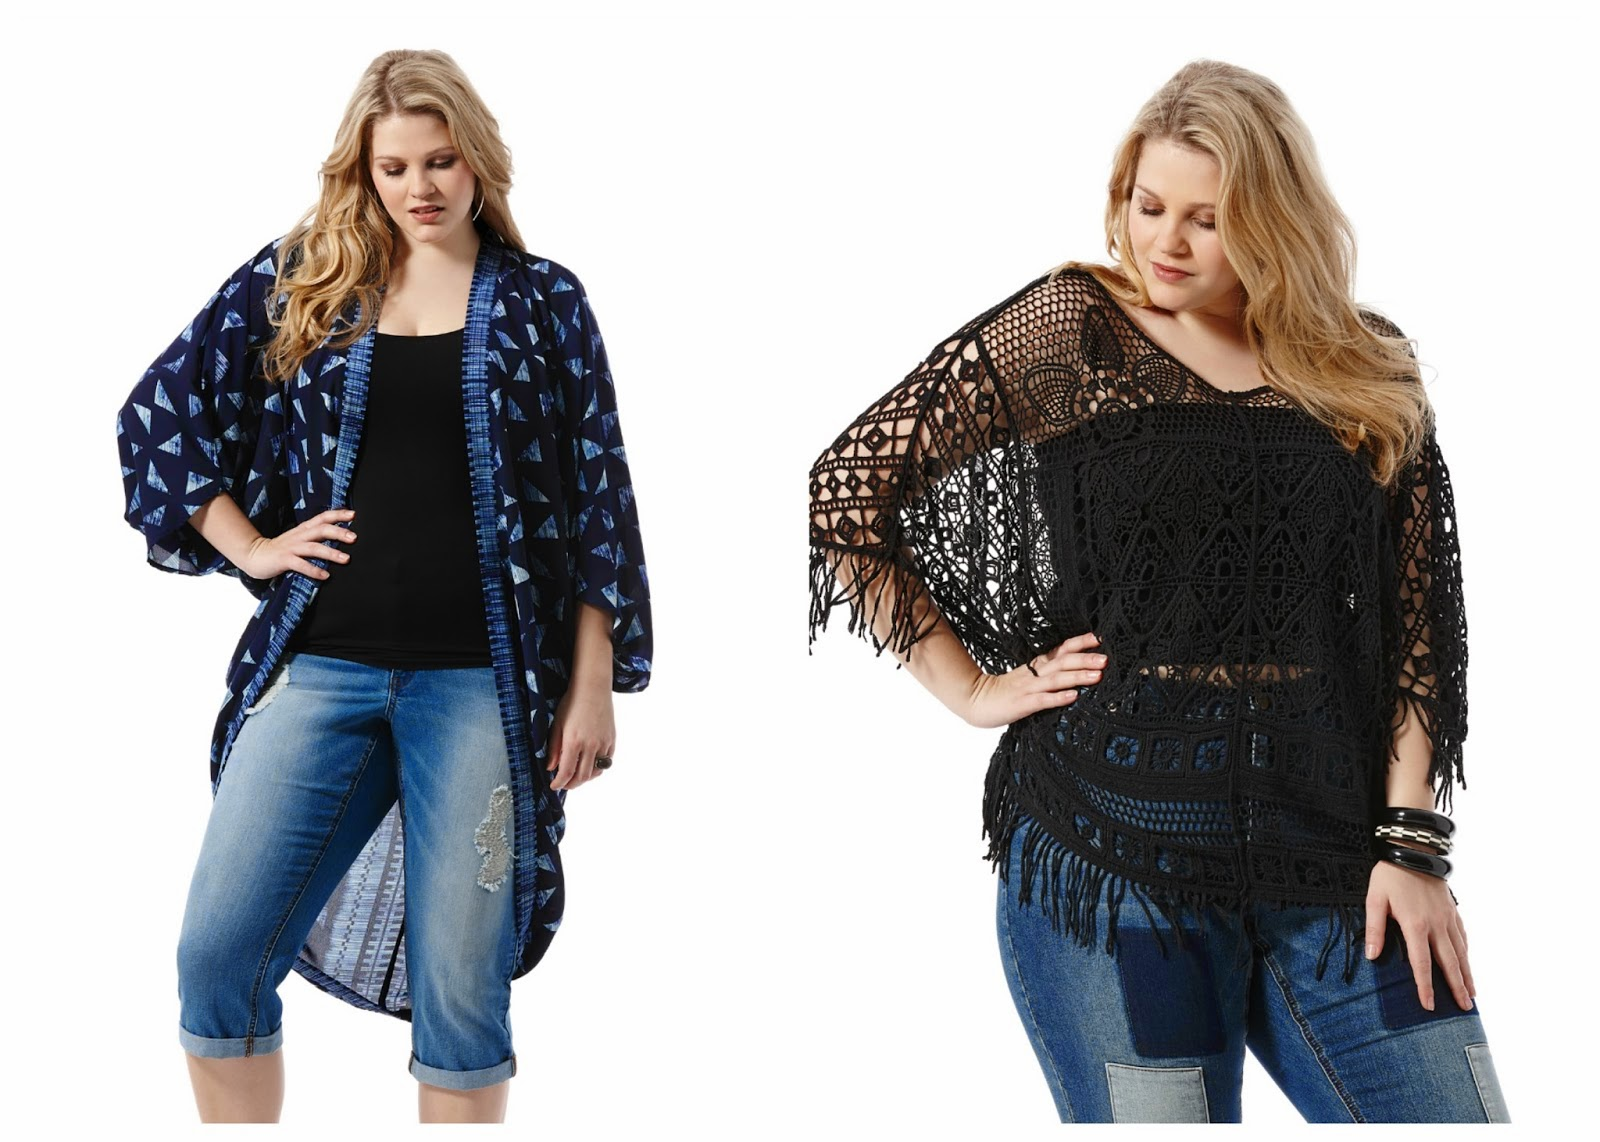 kimonos, crochet, poncho, boho, jeans, plus size fashion, dillards